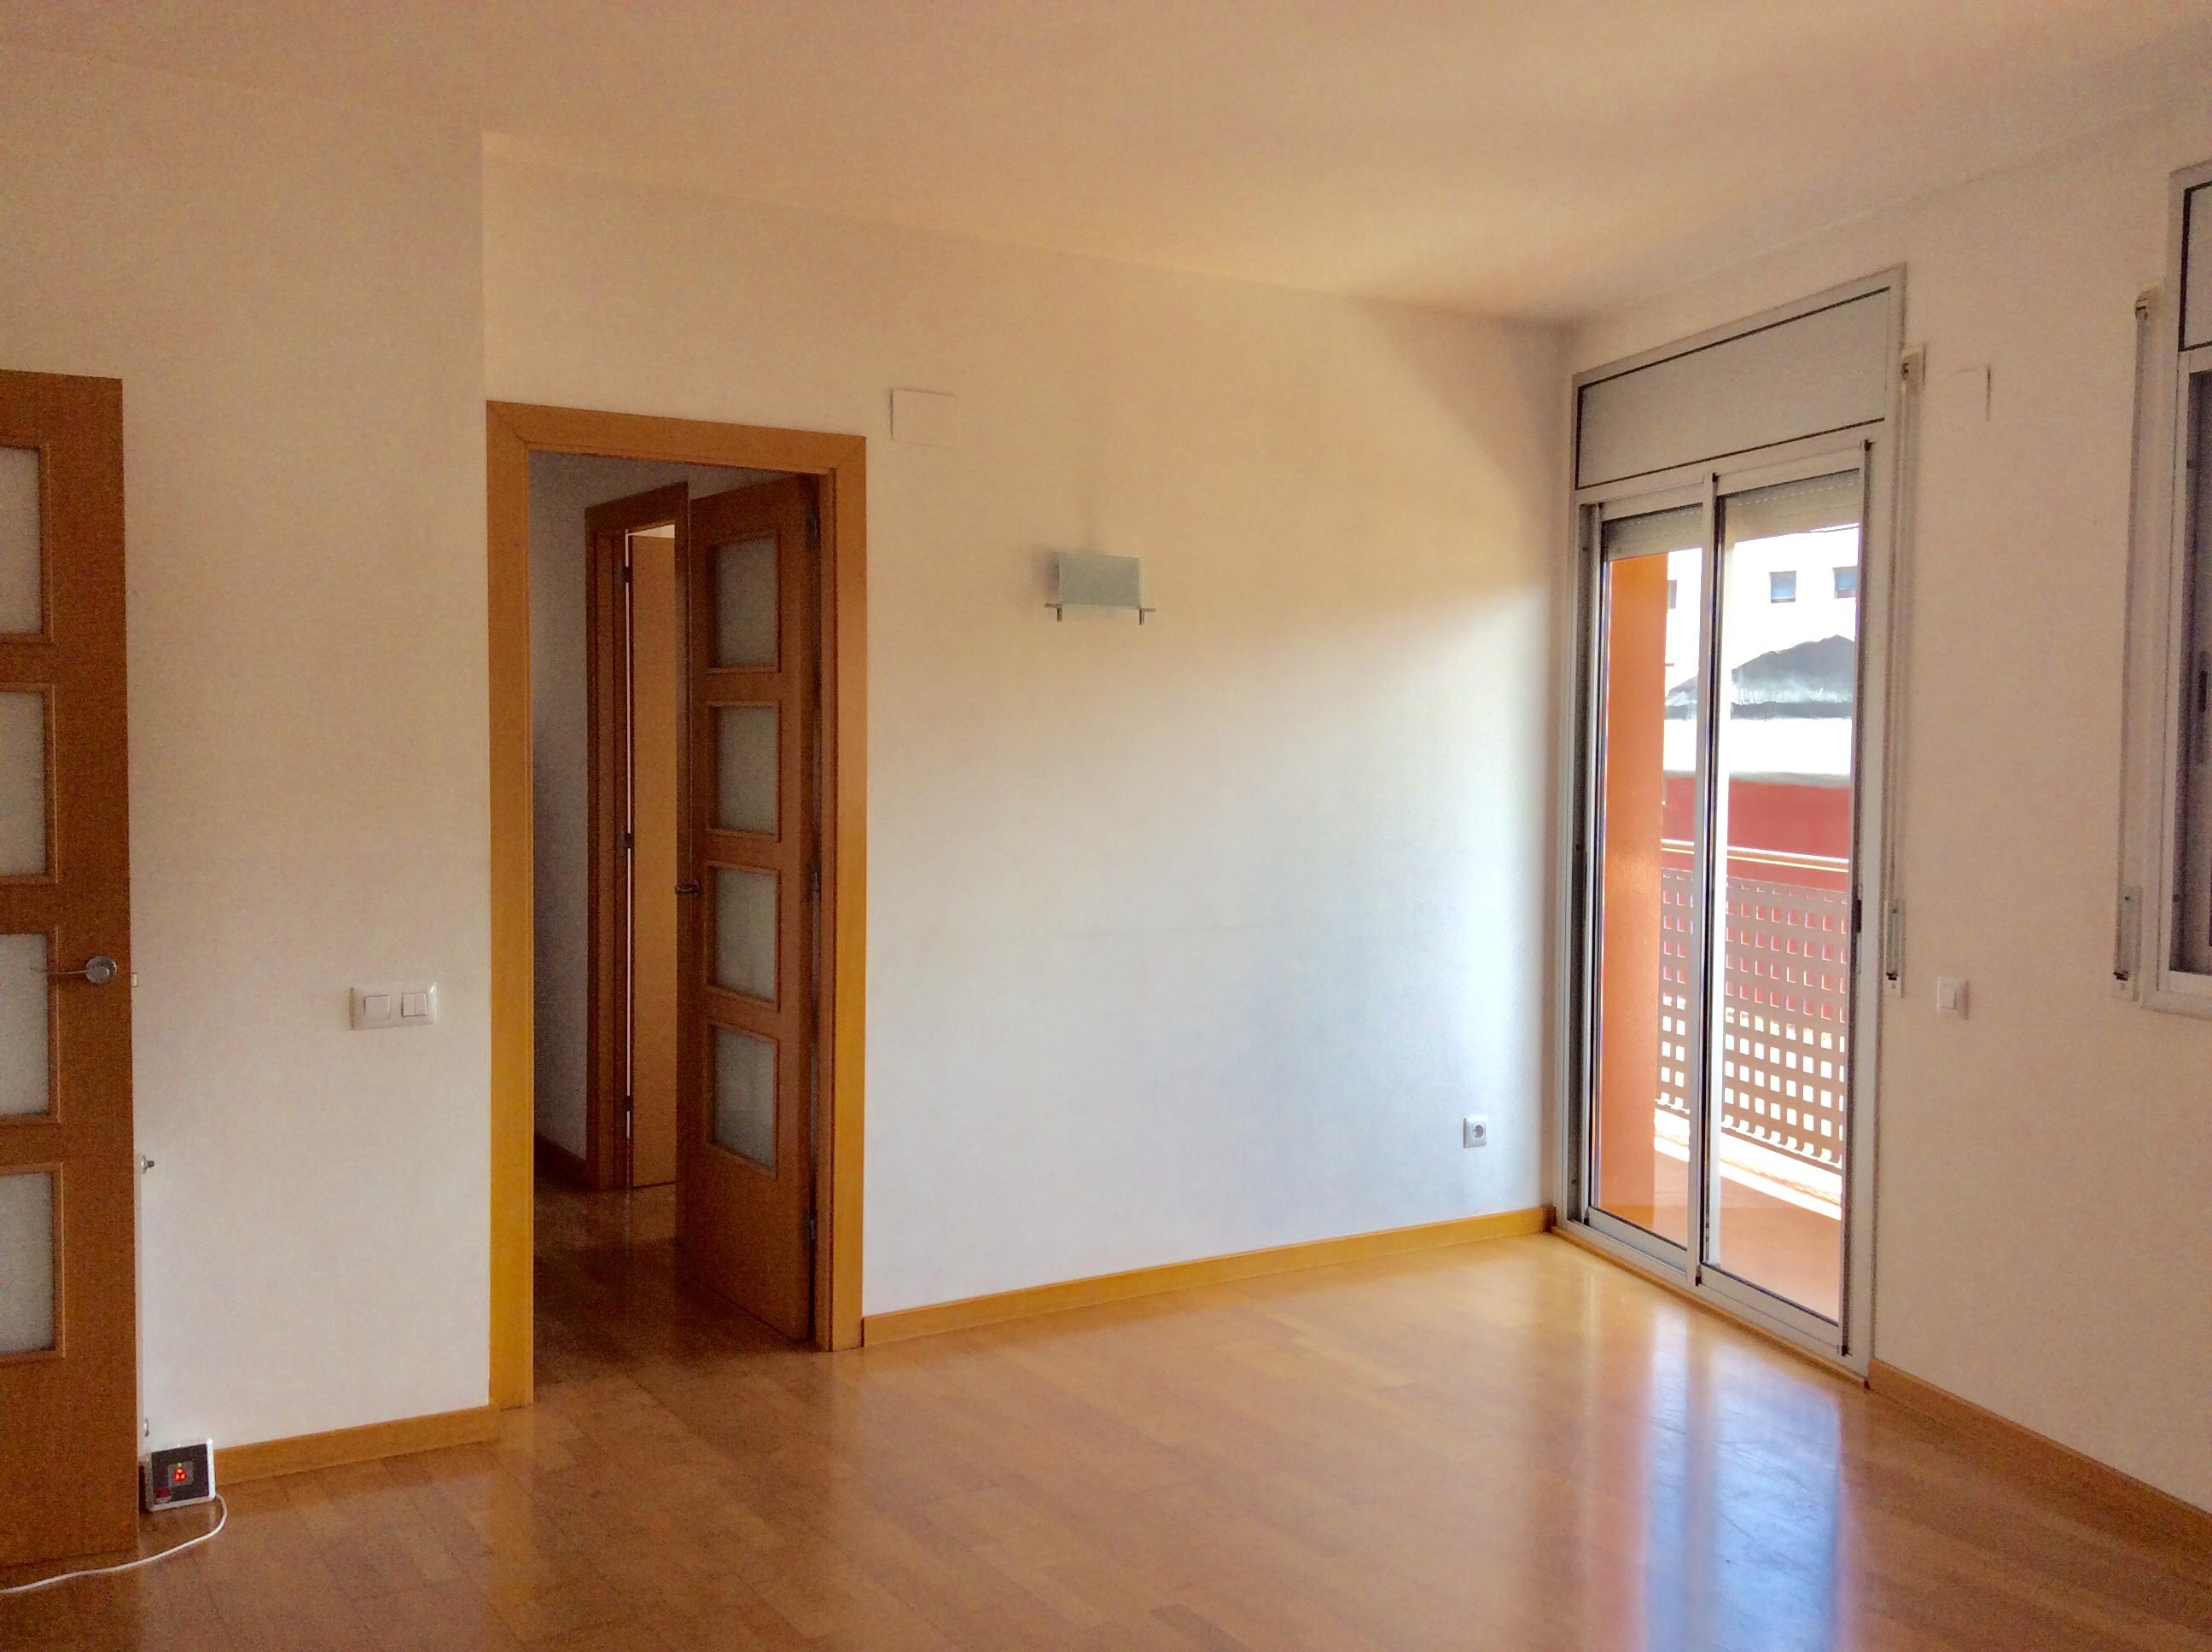 241109 Flat for sale in Sants-Montjuïc, La Marina de Port 4